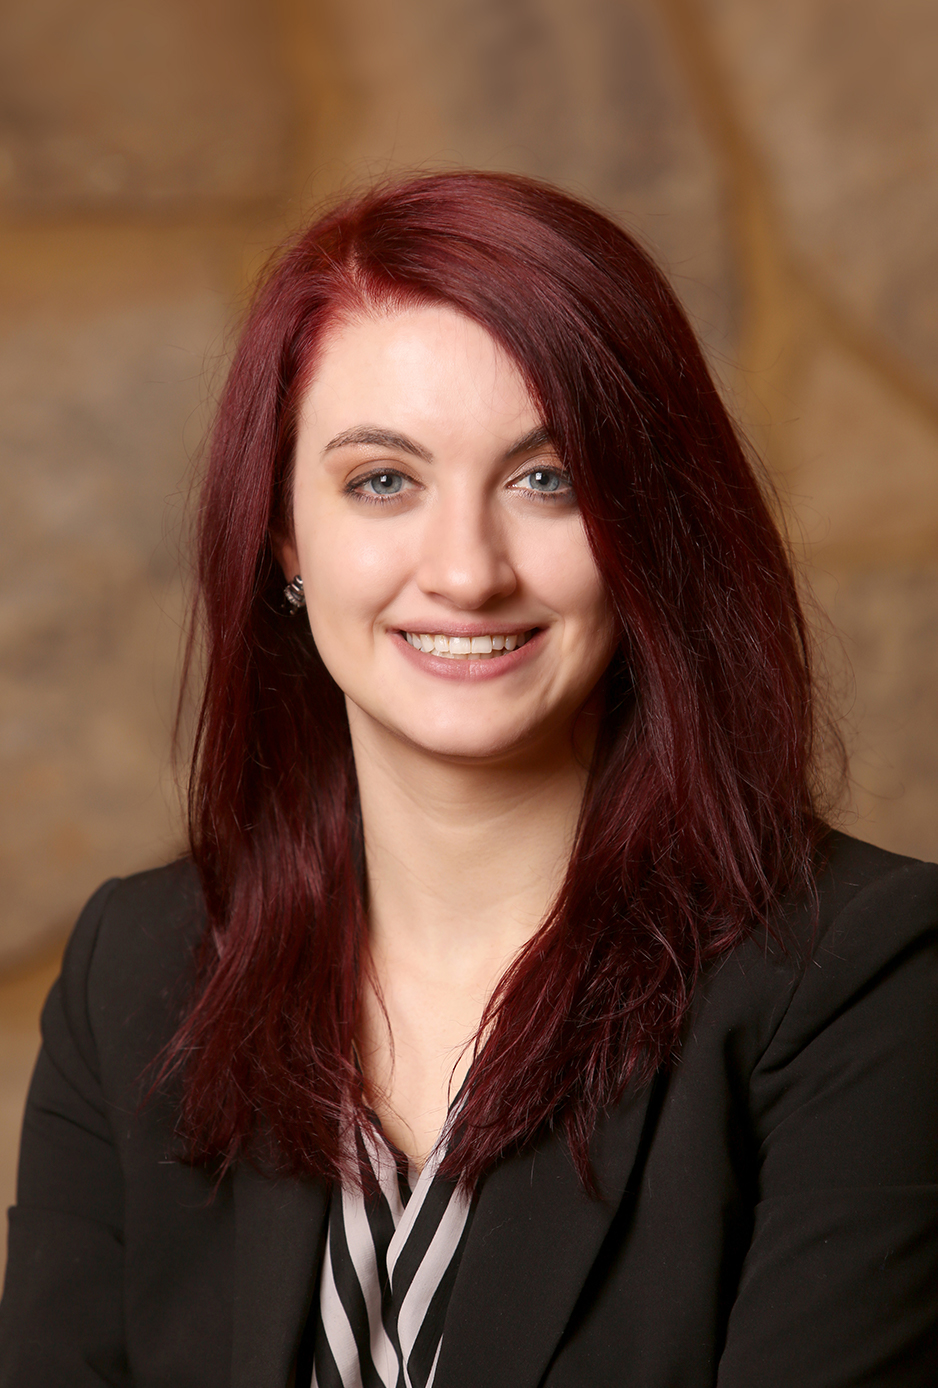 Photo of Shawna L. Domeyer, Associate Attorney at Hammer Law Offices in Dubuque, Iowa